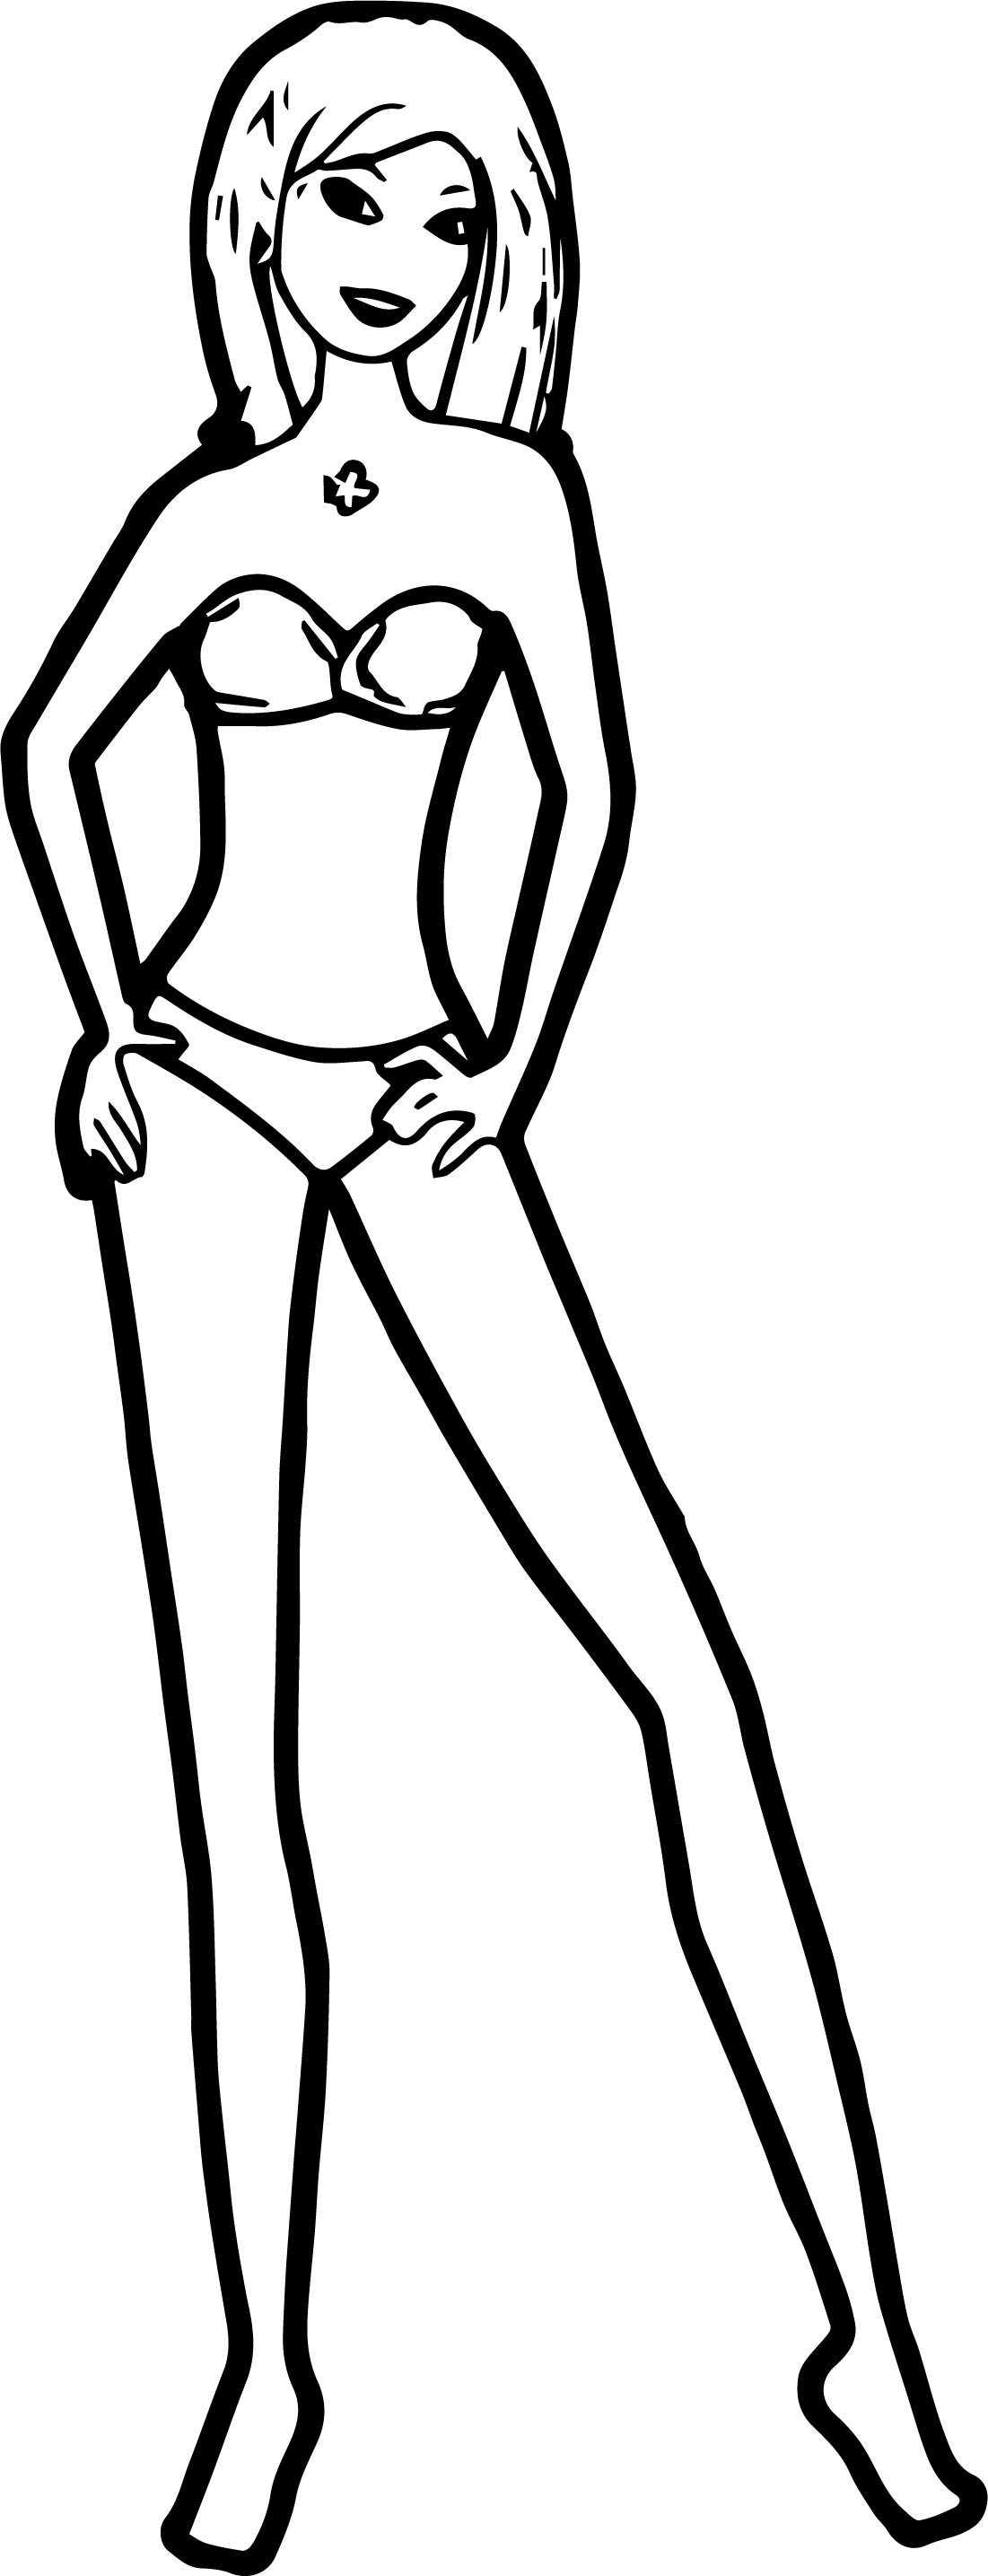 Tall Barbie Beach Pose Coloring Page